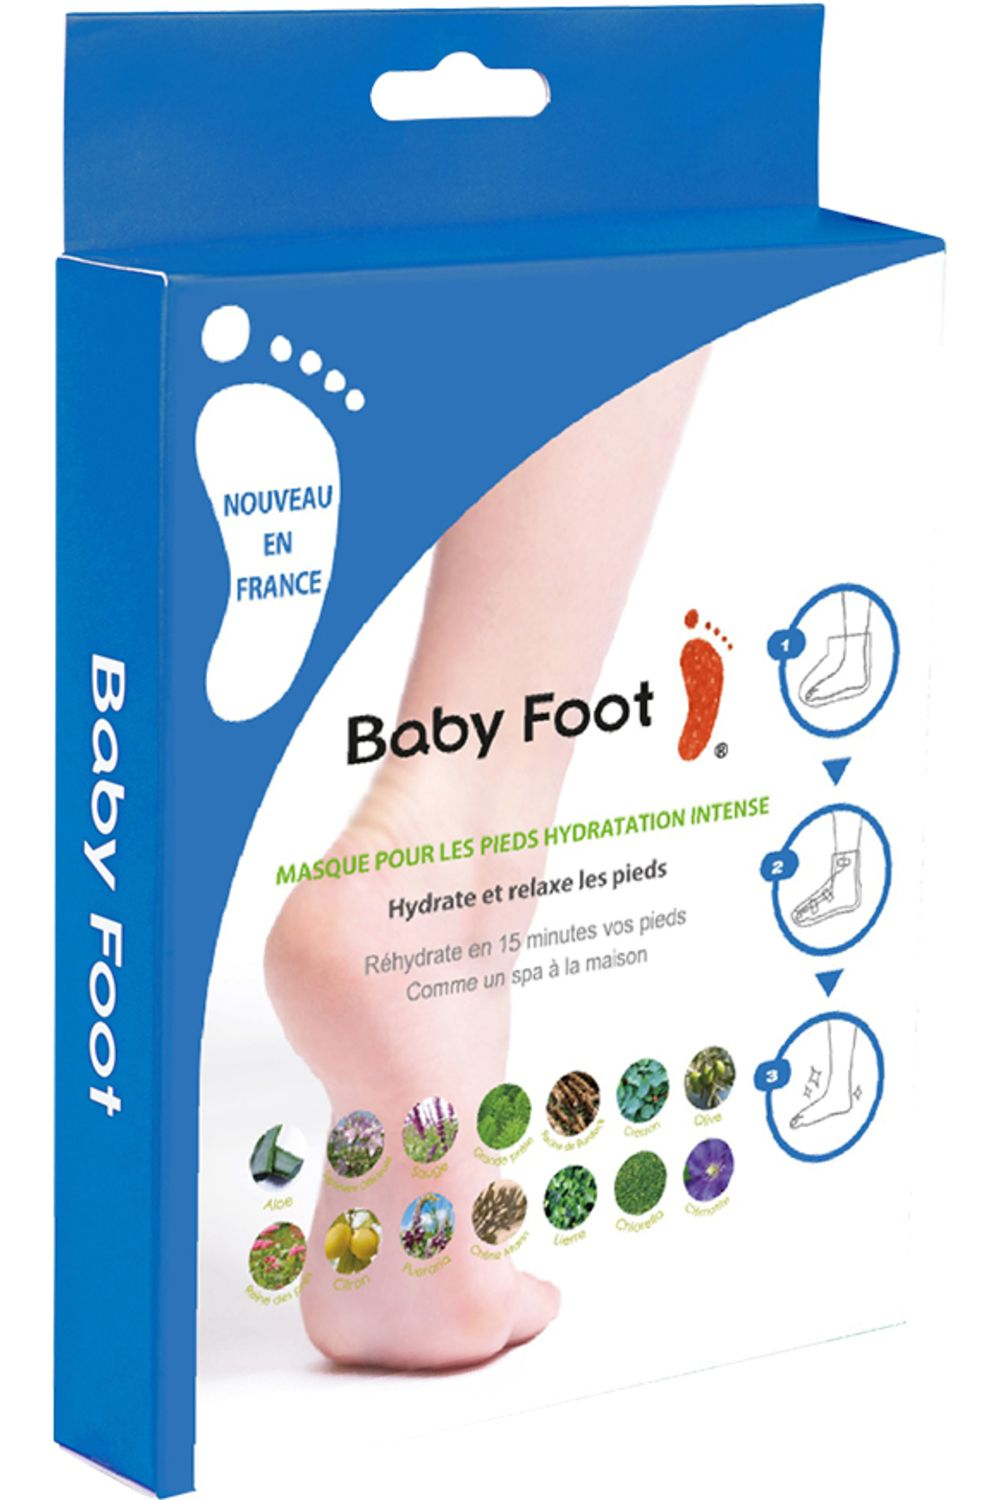 Blissim : Baby Foot - Masque Chaussette Hydratant - Masque Chaussette Hydratant